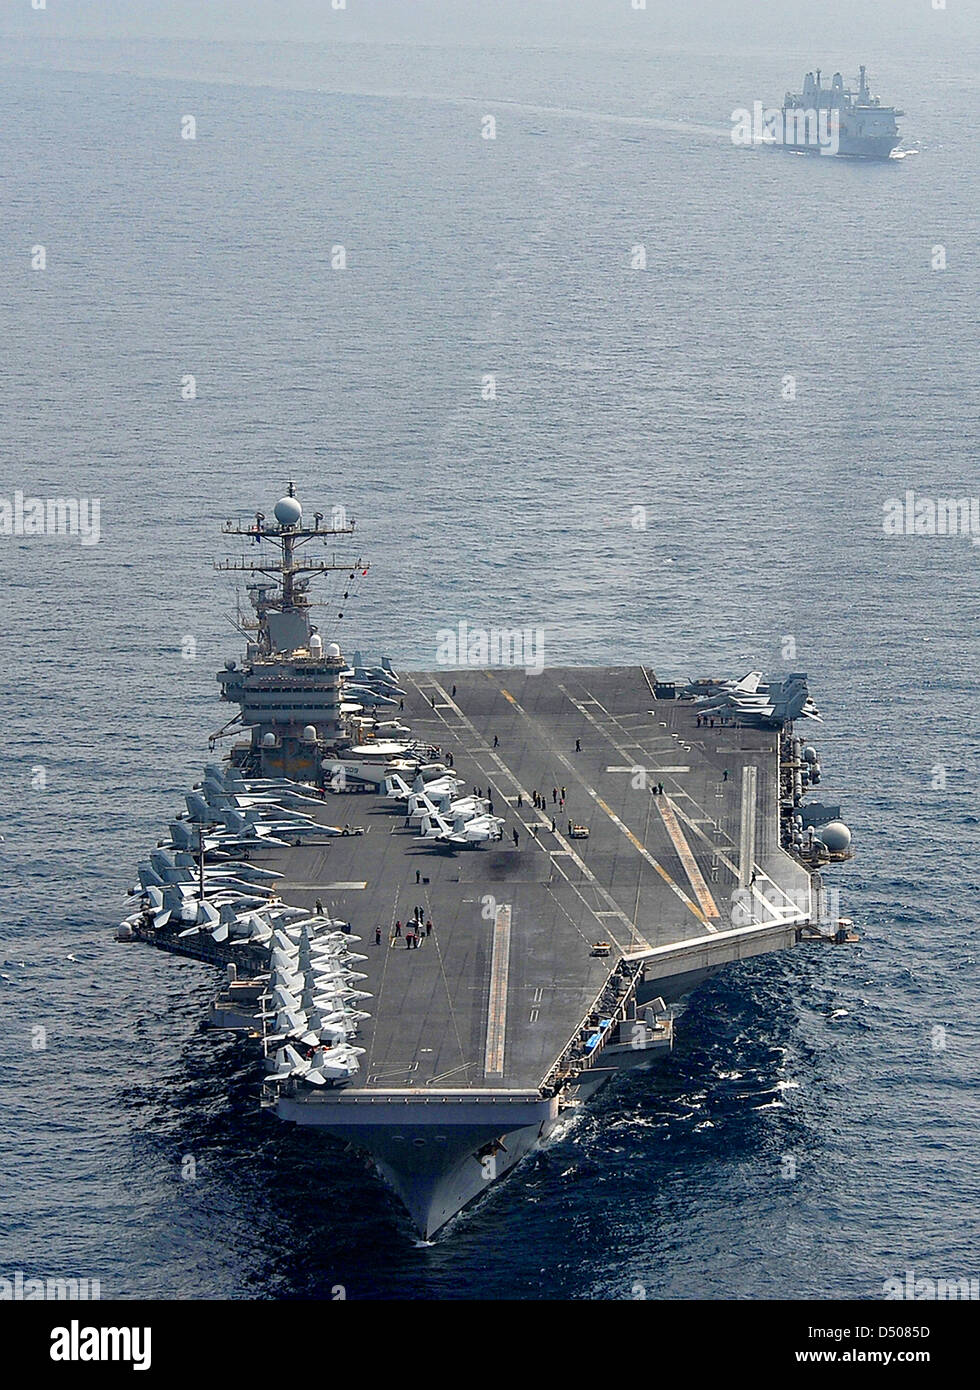 US Navy Nimitz-class aircraft carrier USS Abraham Lincoln operates April 21, 2012 in the Arabian Sea. - Stock Image